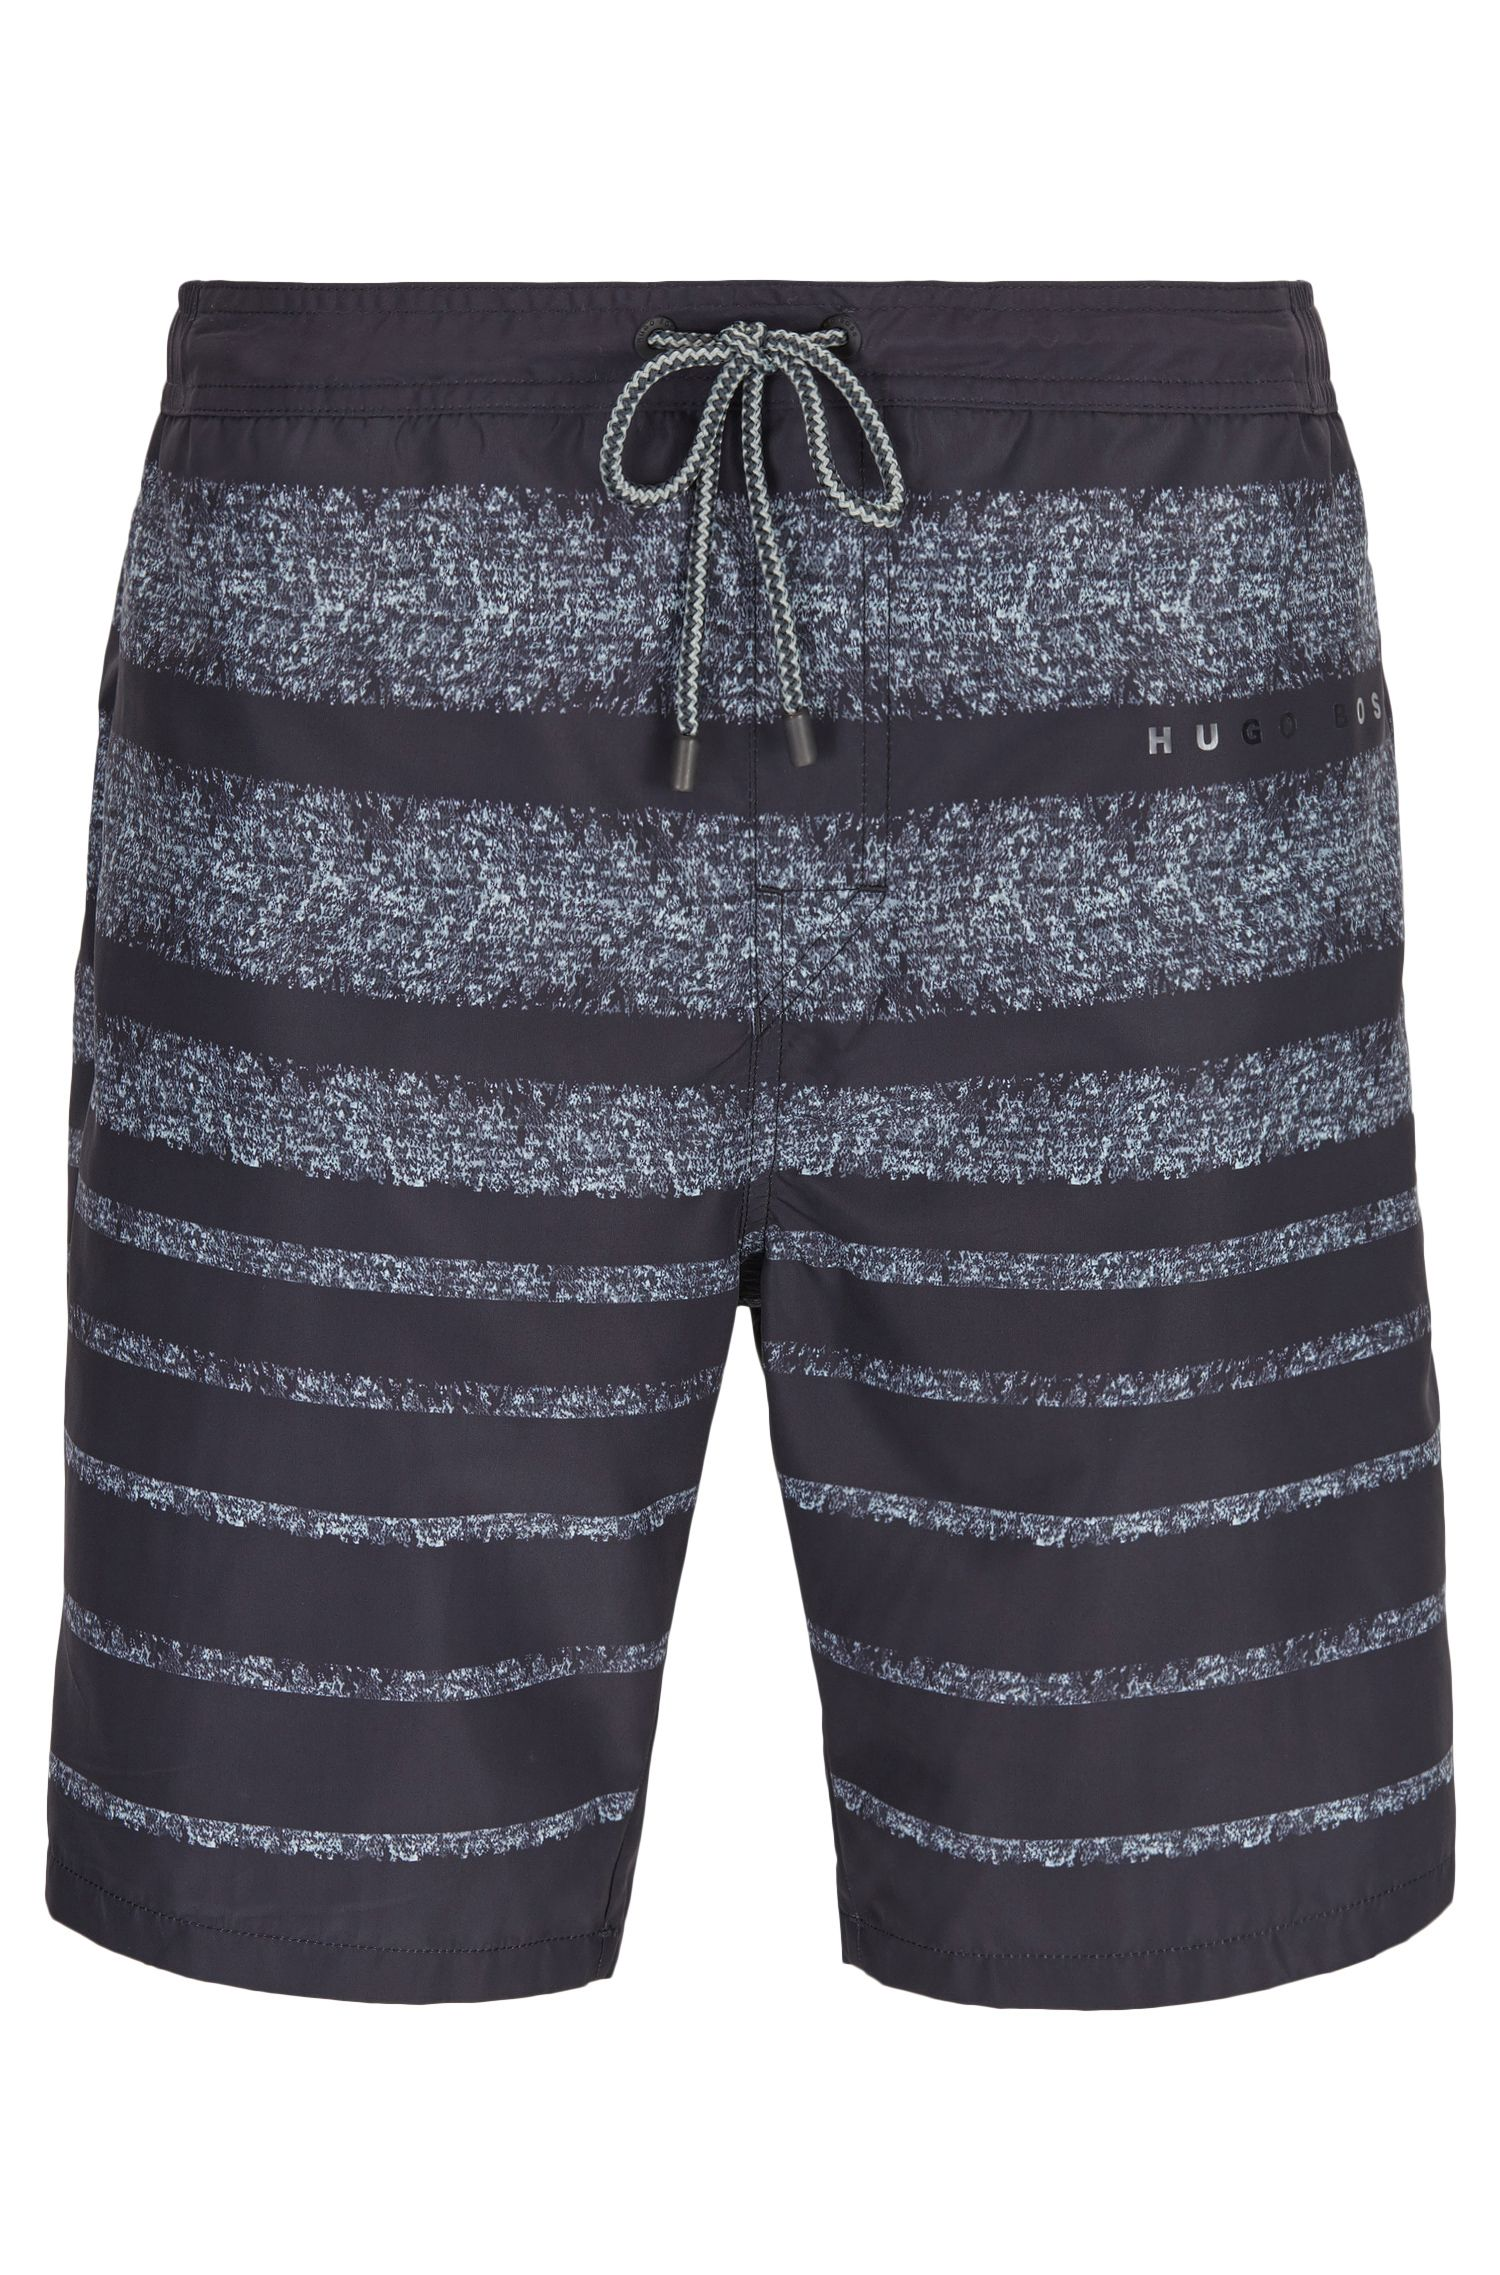 Striped long-length swim shorts in a quick-drying technical fabric